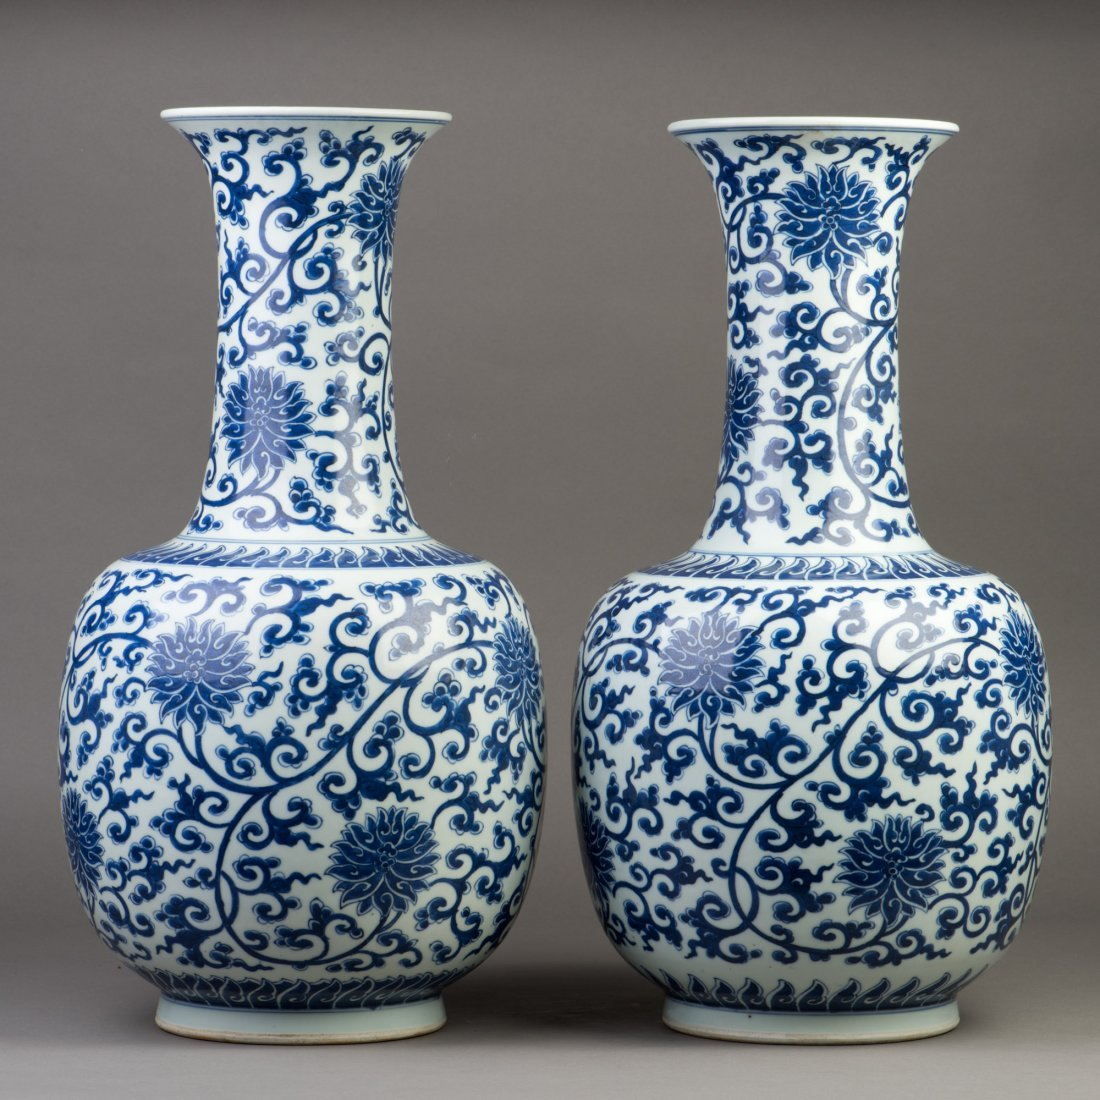 A PAIR OF LARGE BLUE AND WHITE PORCELAIN VASES